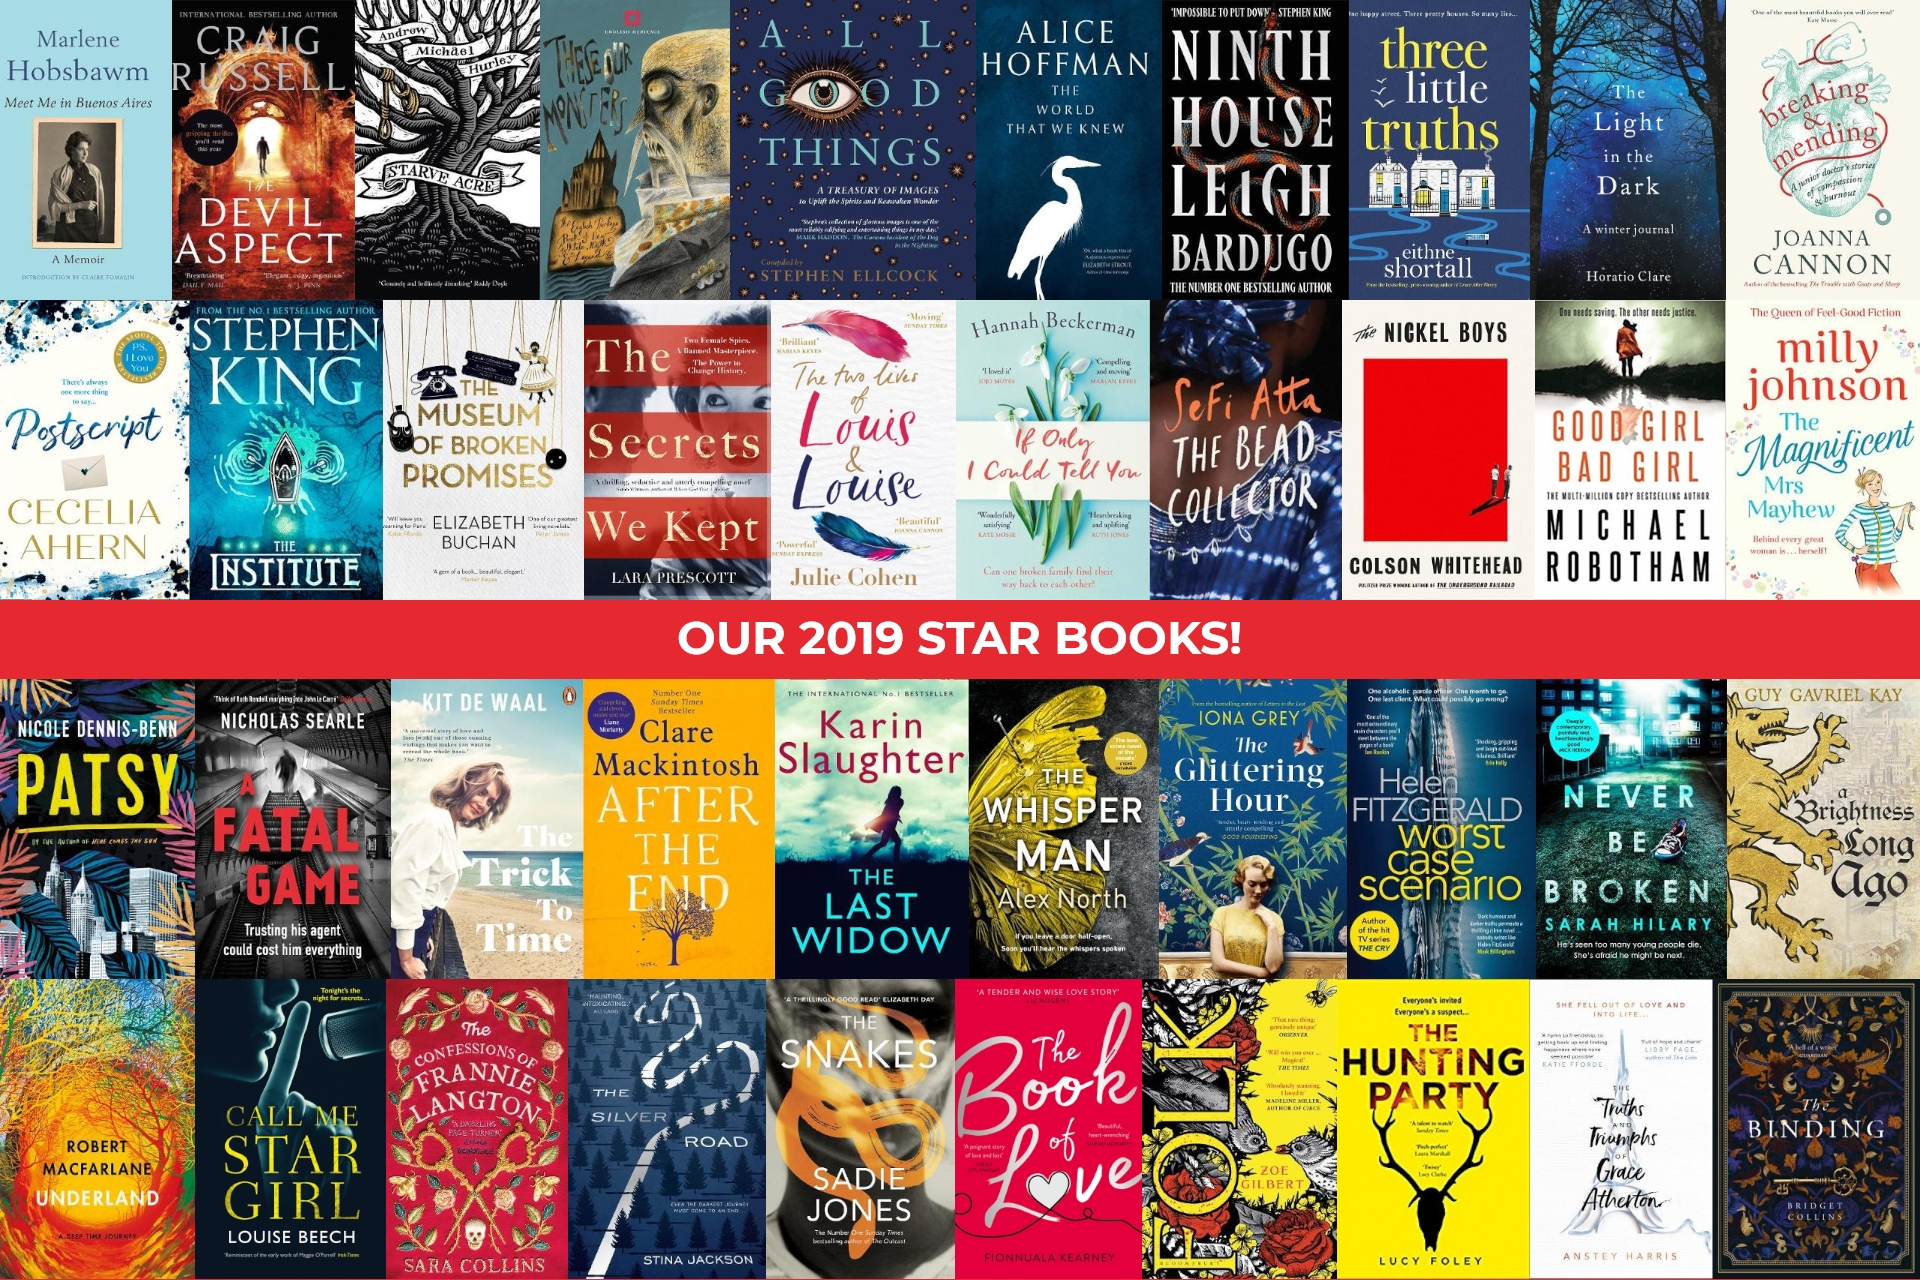 Win a Year of Reading with our Star Books MEGA GIVEAWAY 2019!